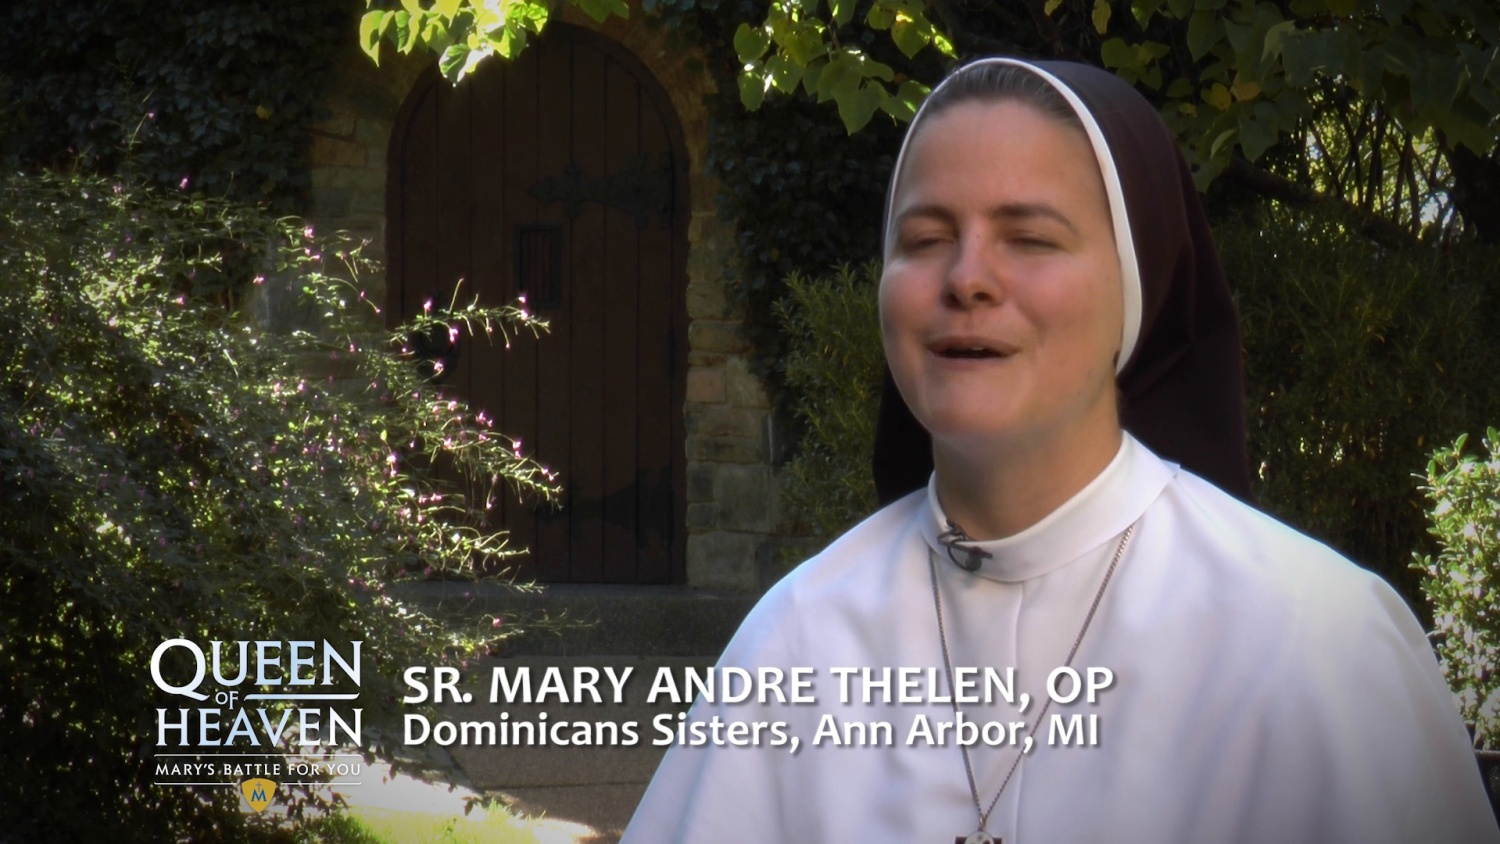 Sr. Mary André Thelen